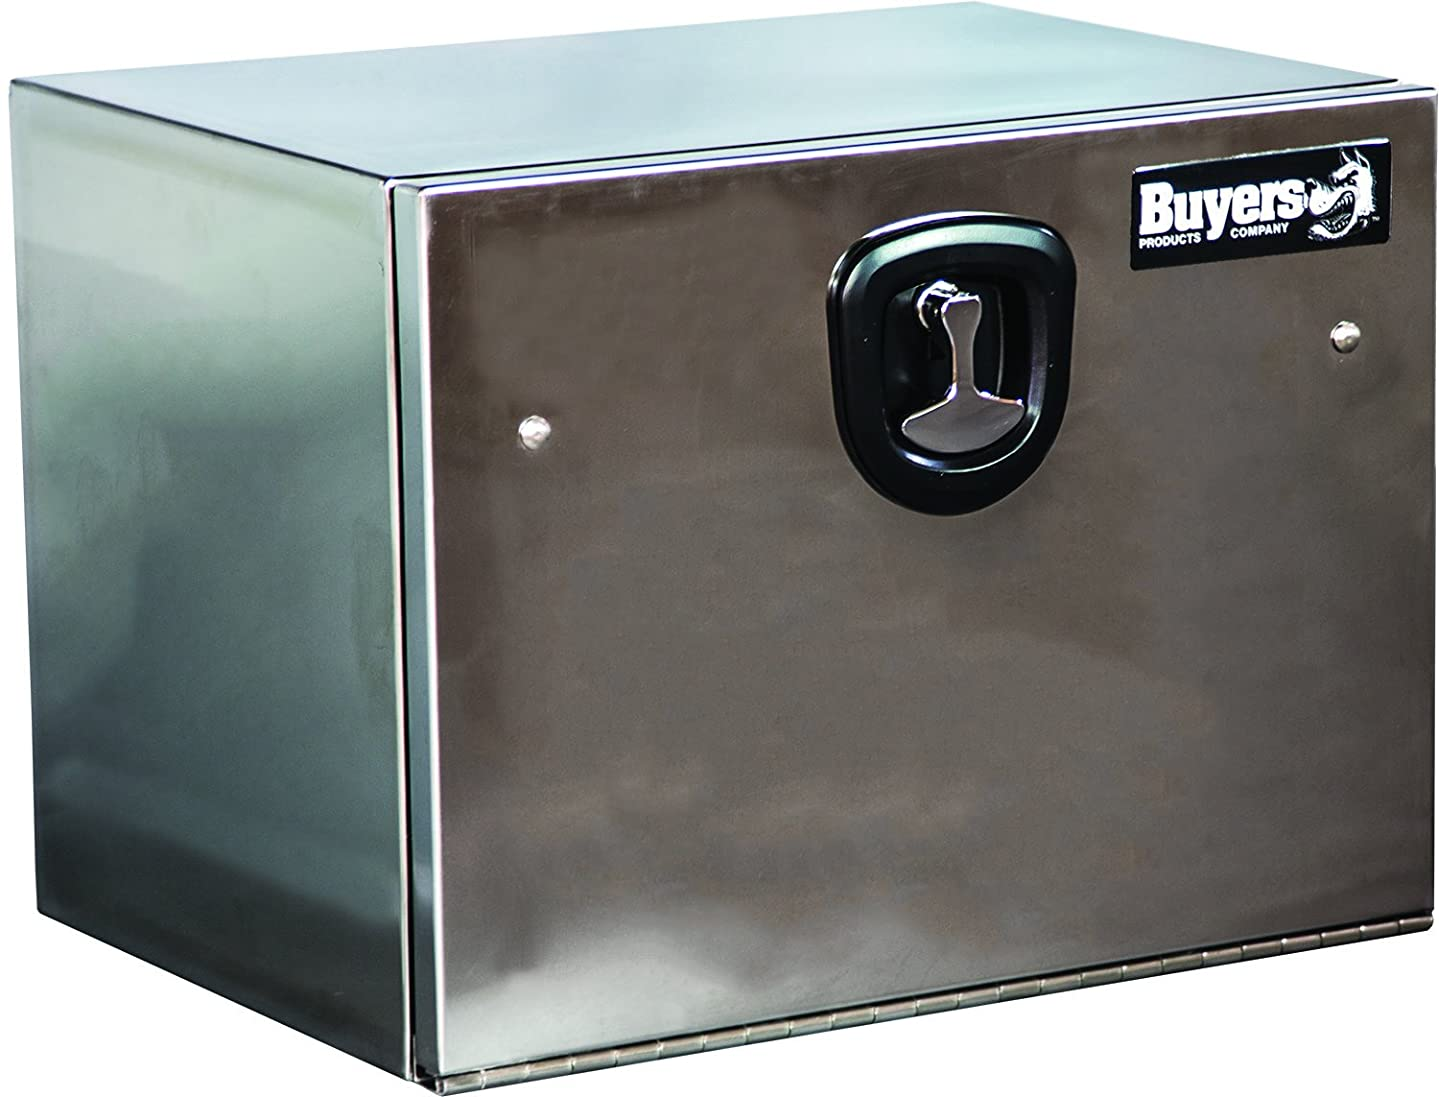 Buyers Products Polished Stainless Steel Underbody Truck Box w/ T-Handle Latch (18x18x36Inch)